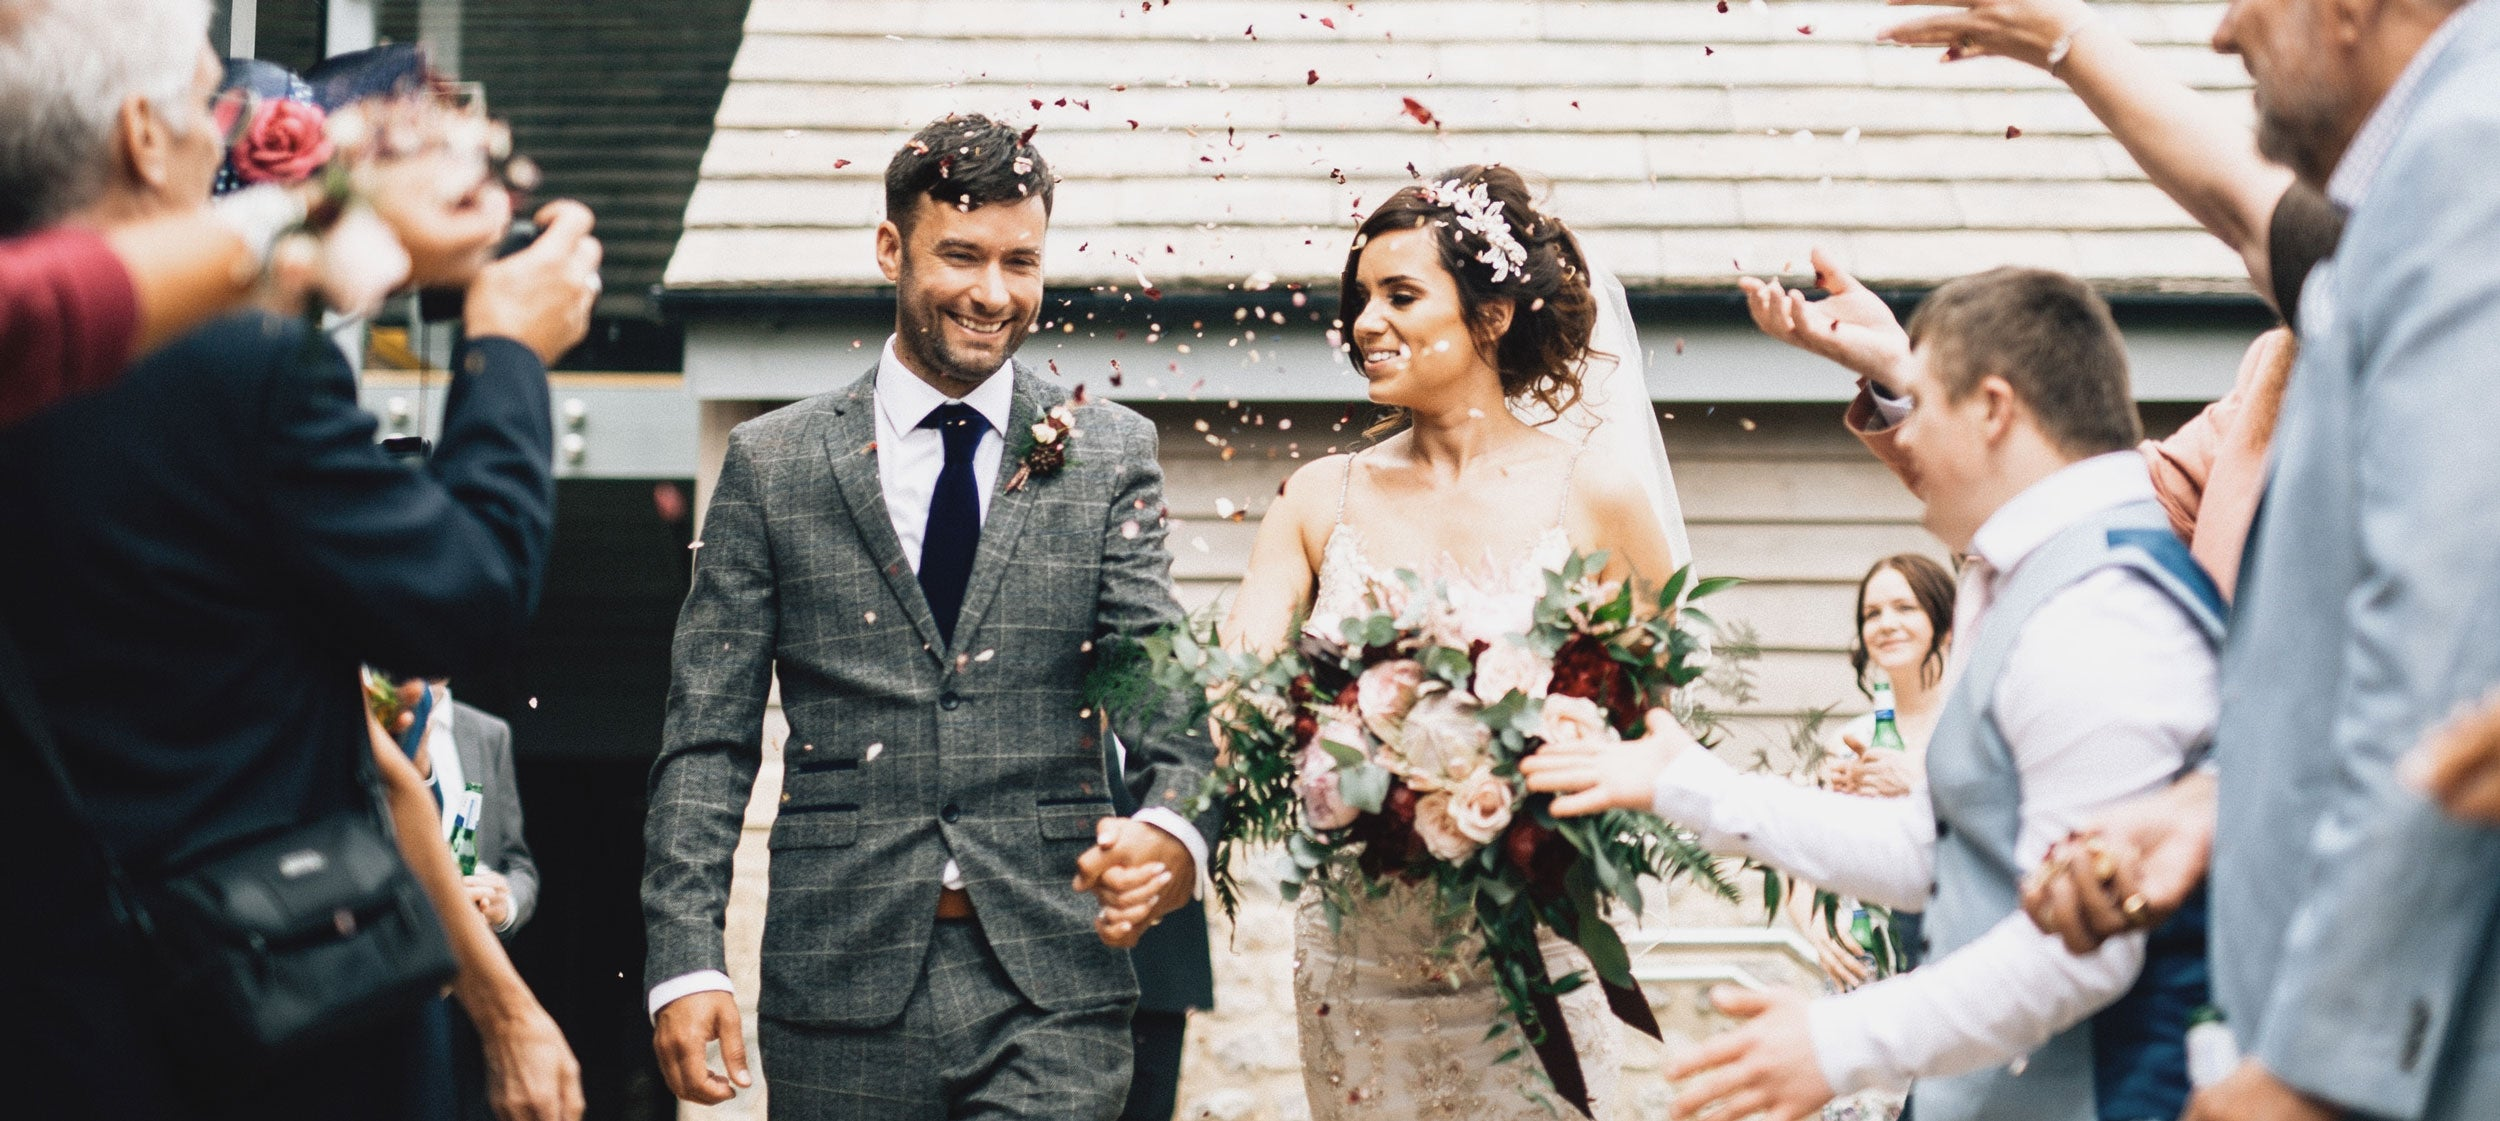 Couple get married and walk through confetti line